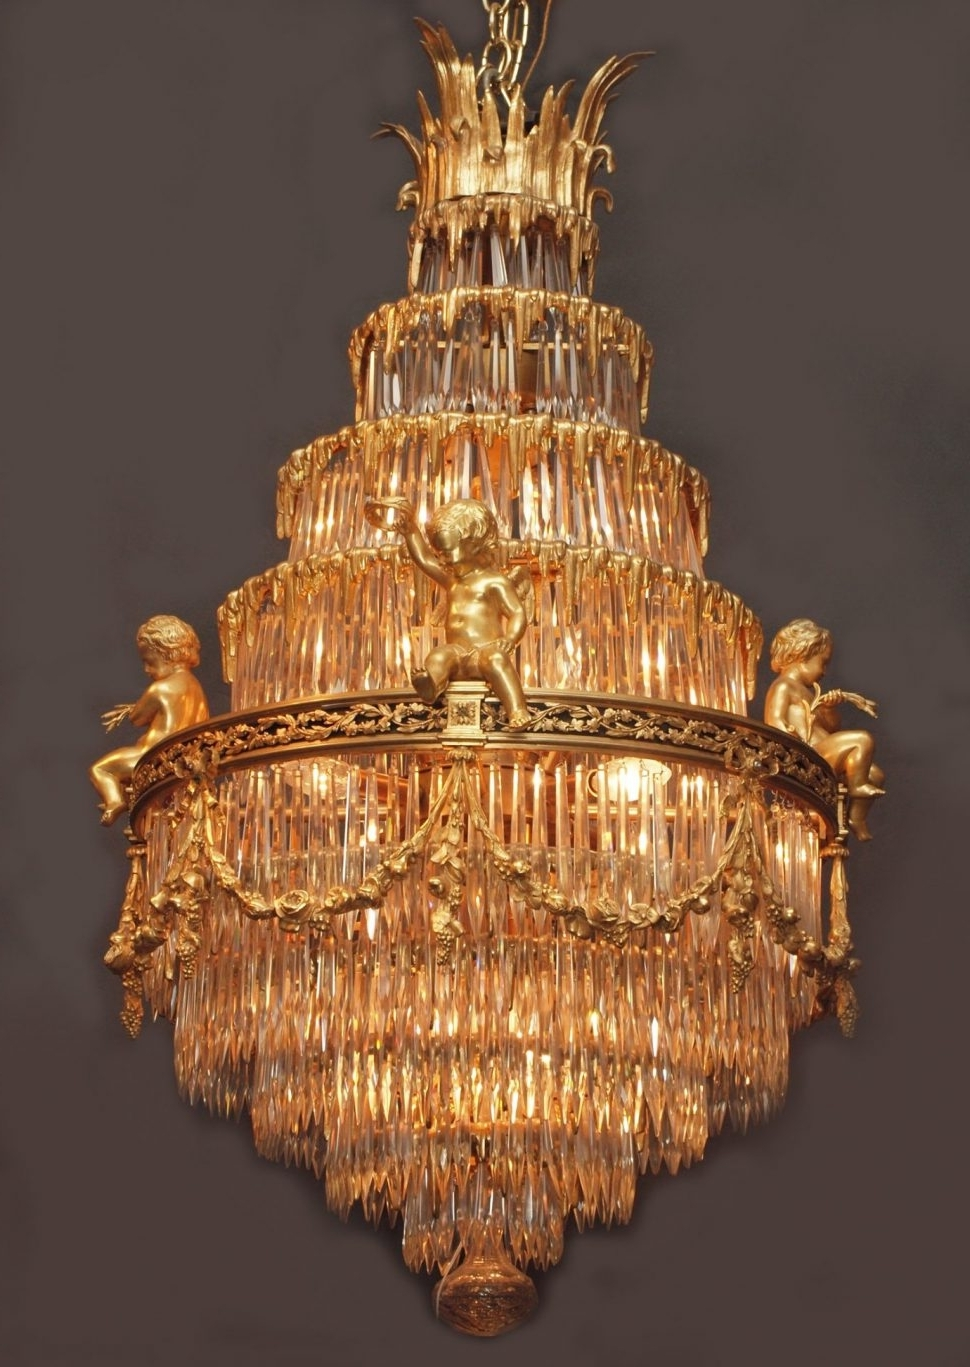 Antique Chandeliers Chicago Tags : 59 Gracious Antique Chandeliers In Well Known Antique Chandeliers (View 4 of 20)